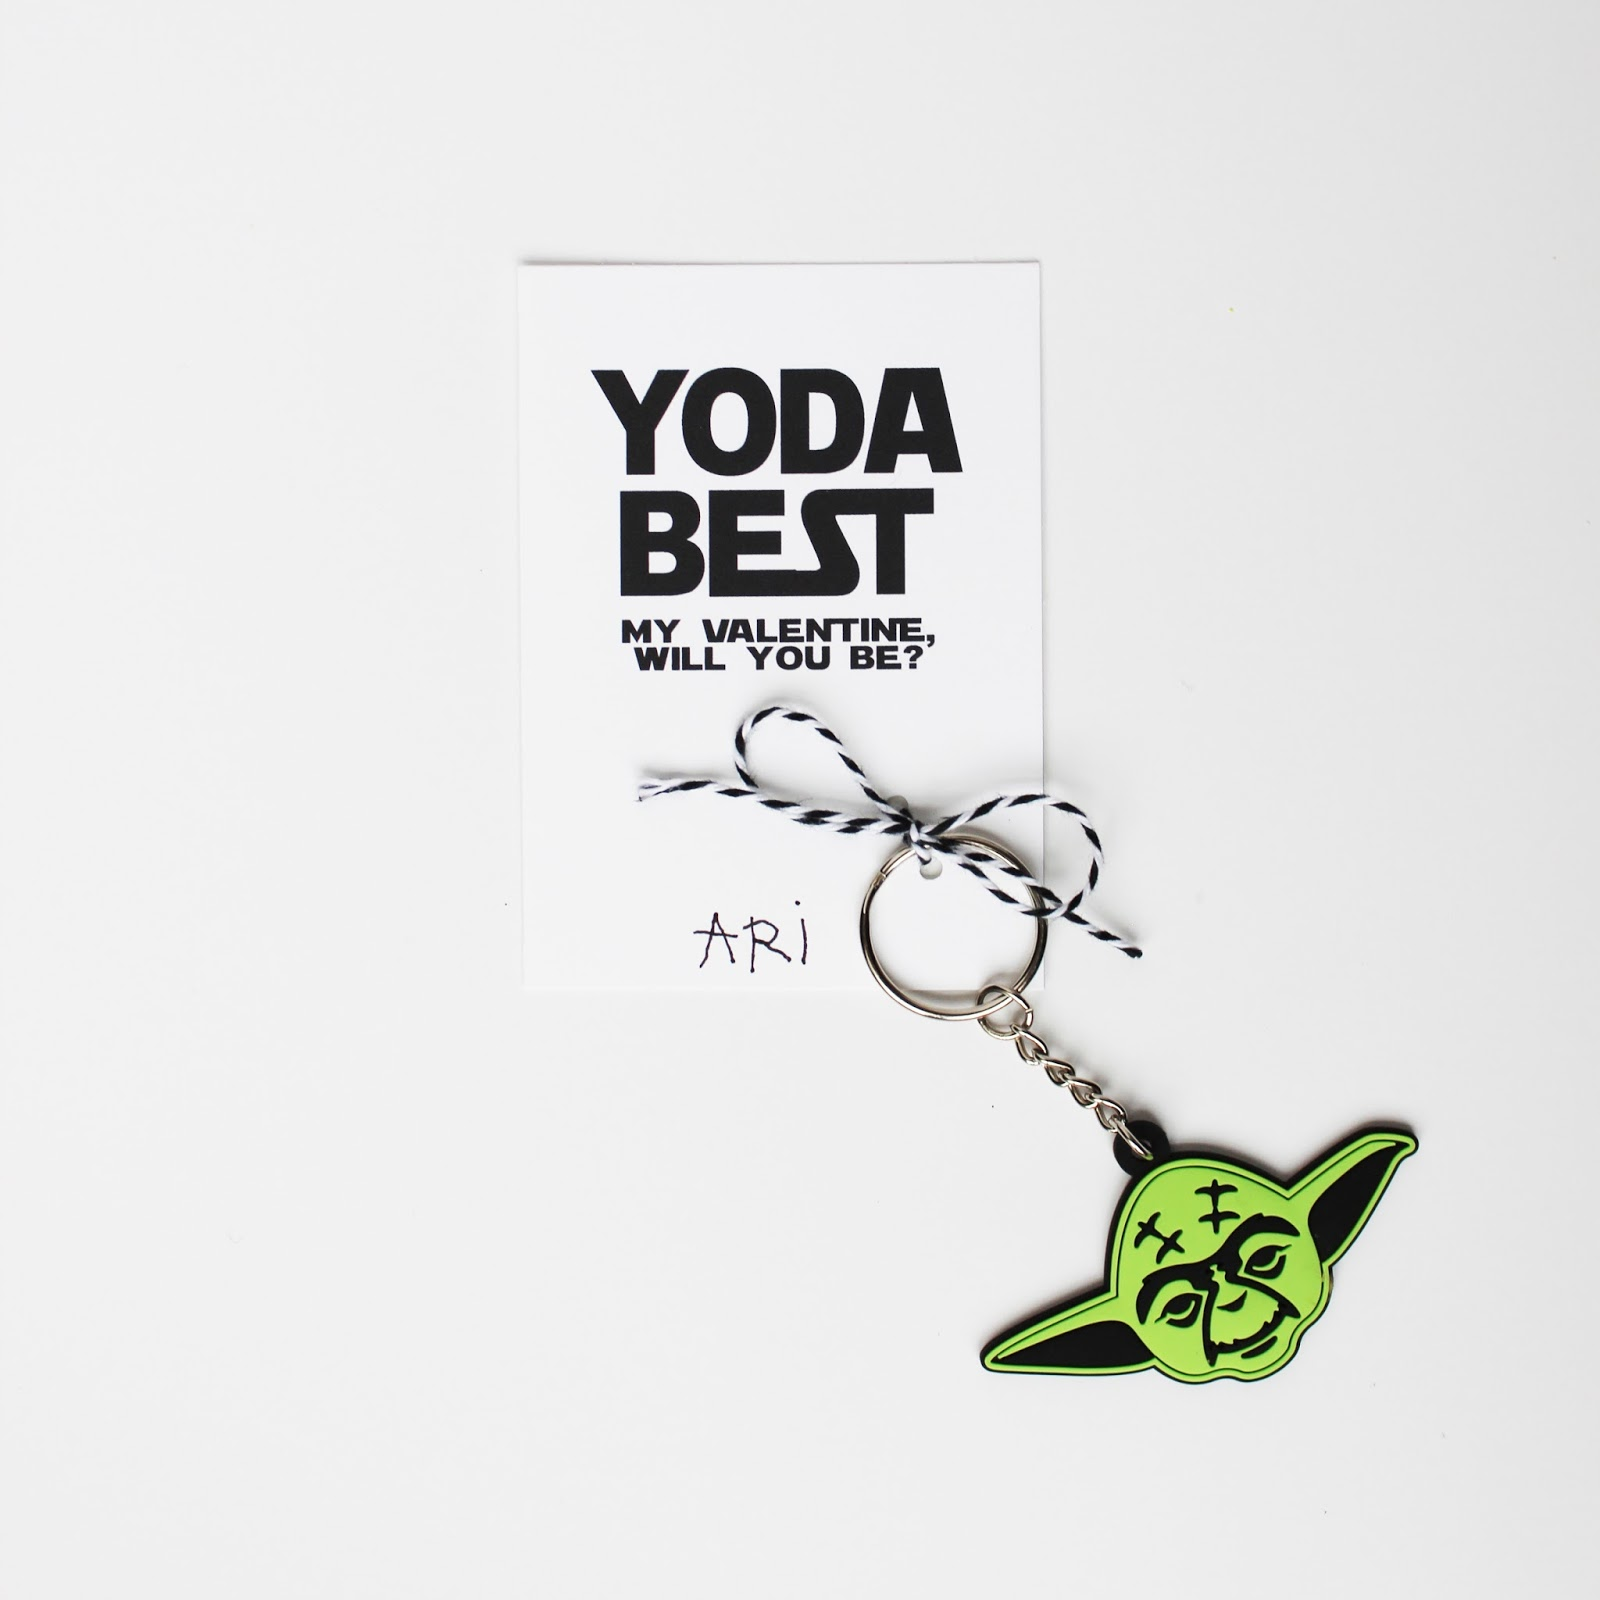 image about Yoda Printable identified as YODA Easiest Program VALENTINES (Absolutely free PRINTABLE)